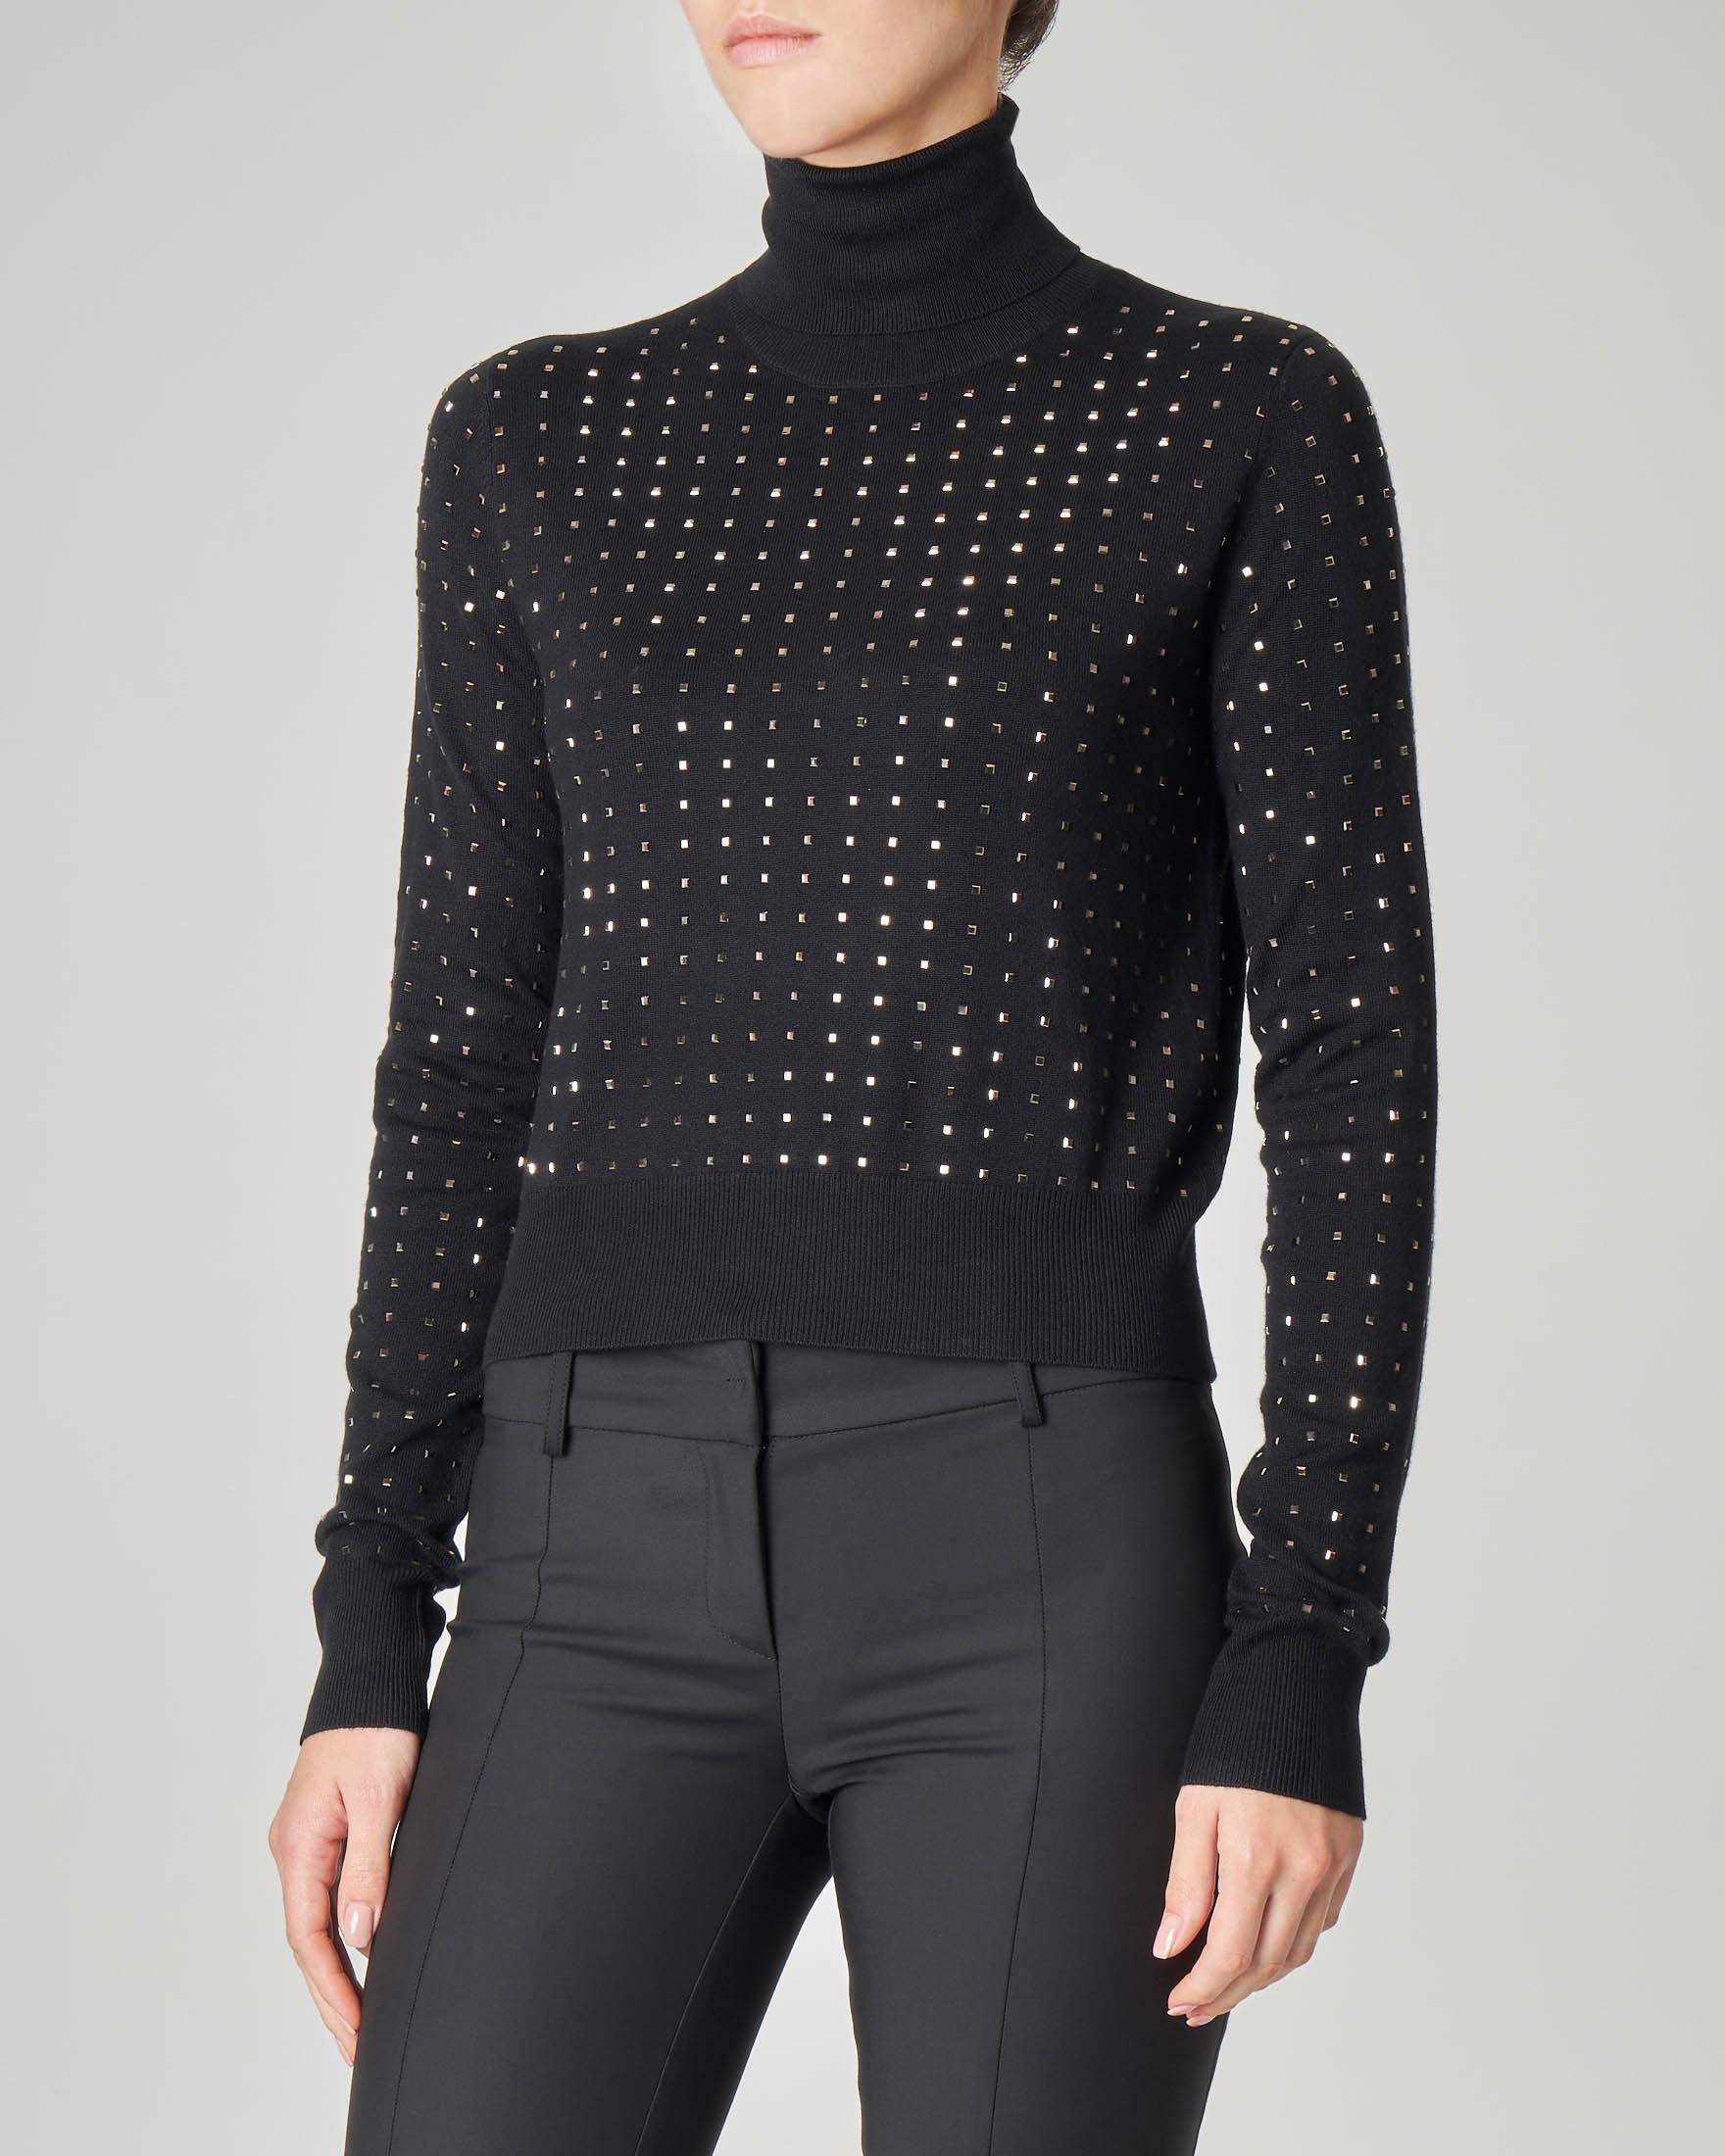 Dolcevita cropped nero in misto viscosa con borchie applicate all over